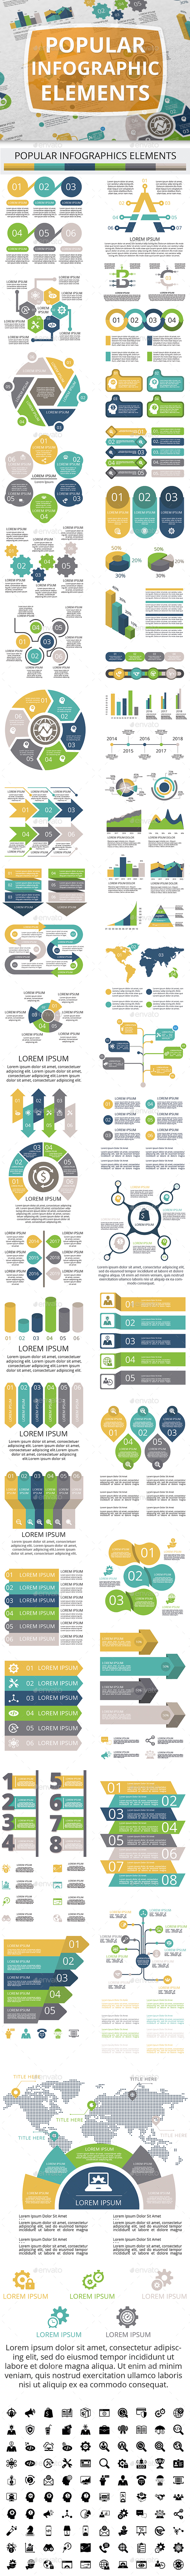 GraphicRiver Popular Infographic Elements 21119099